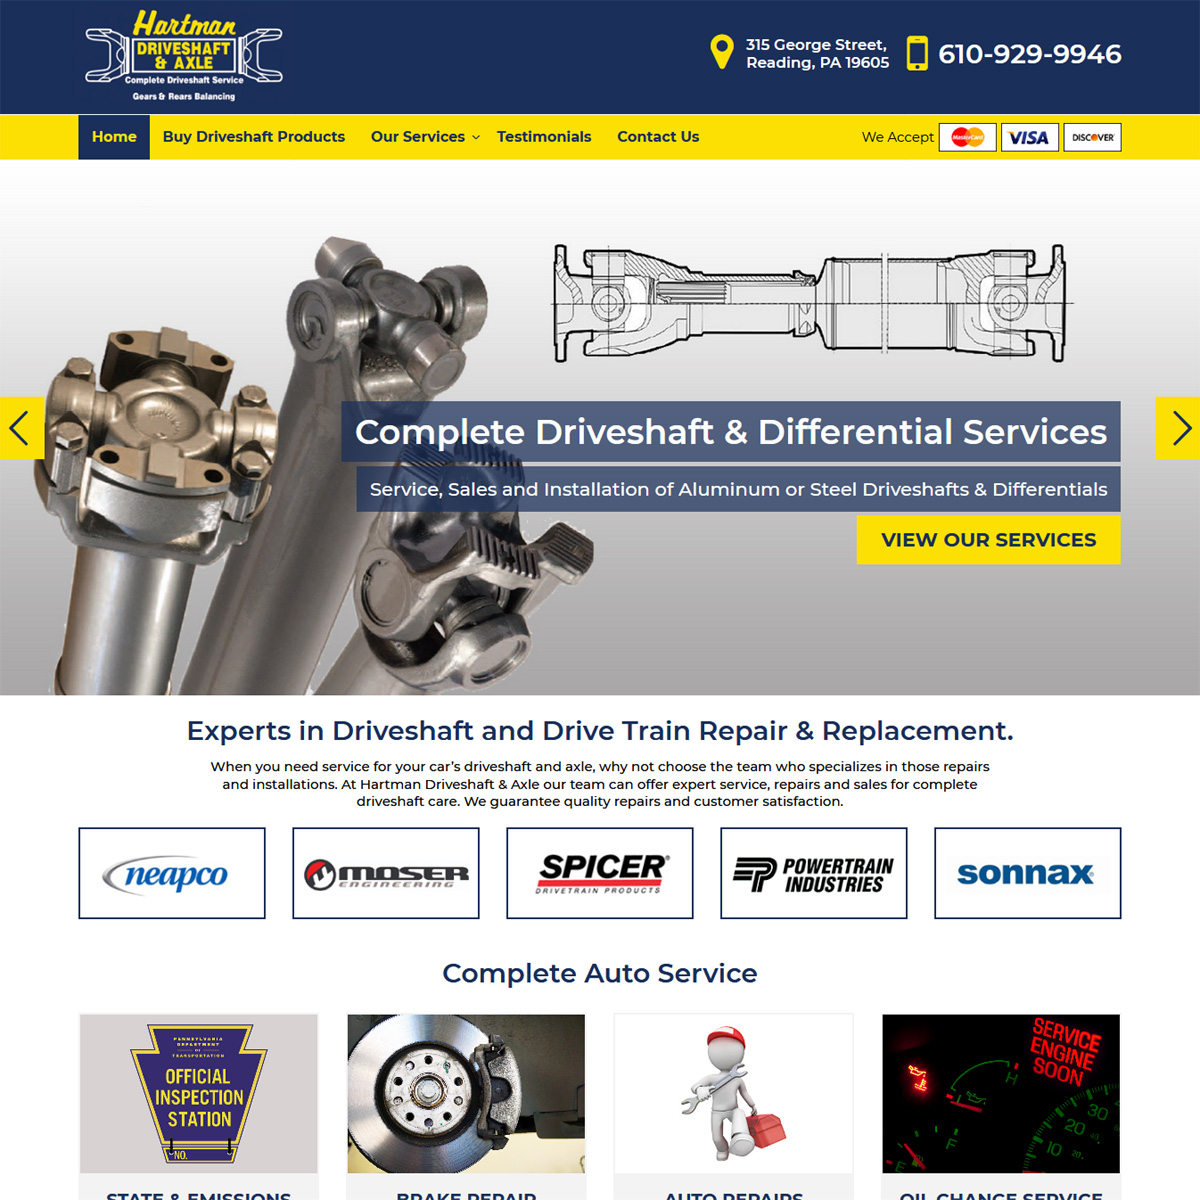 Hartman Driveshaft & Axle Website Design